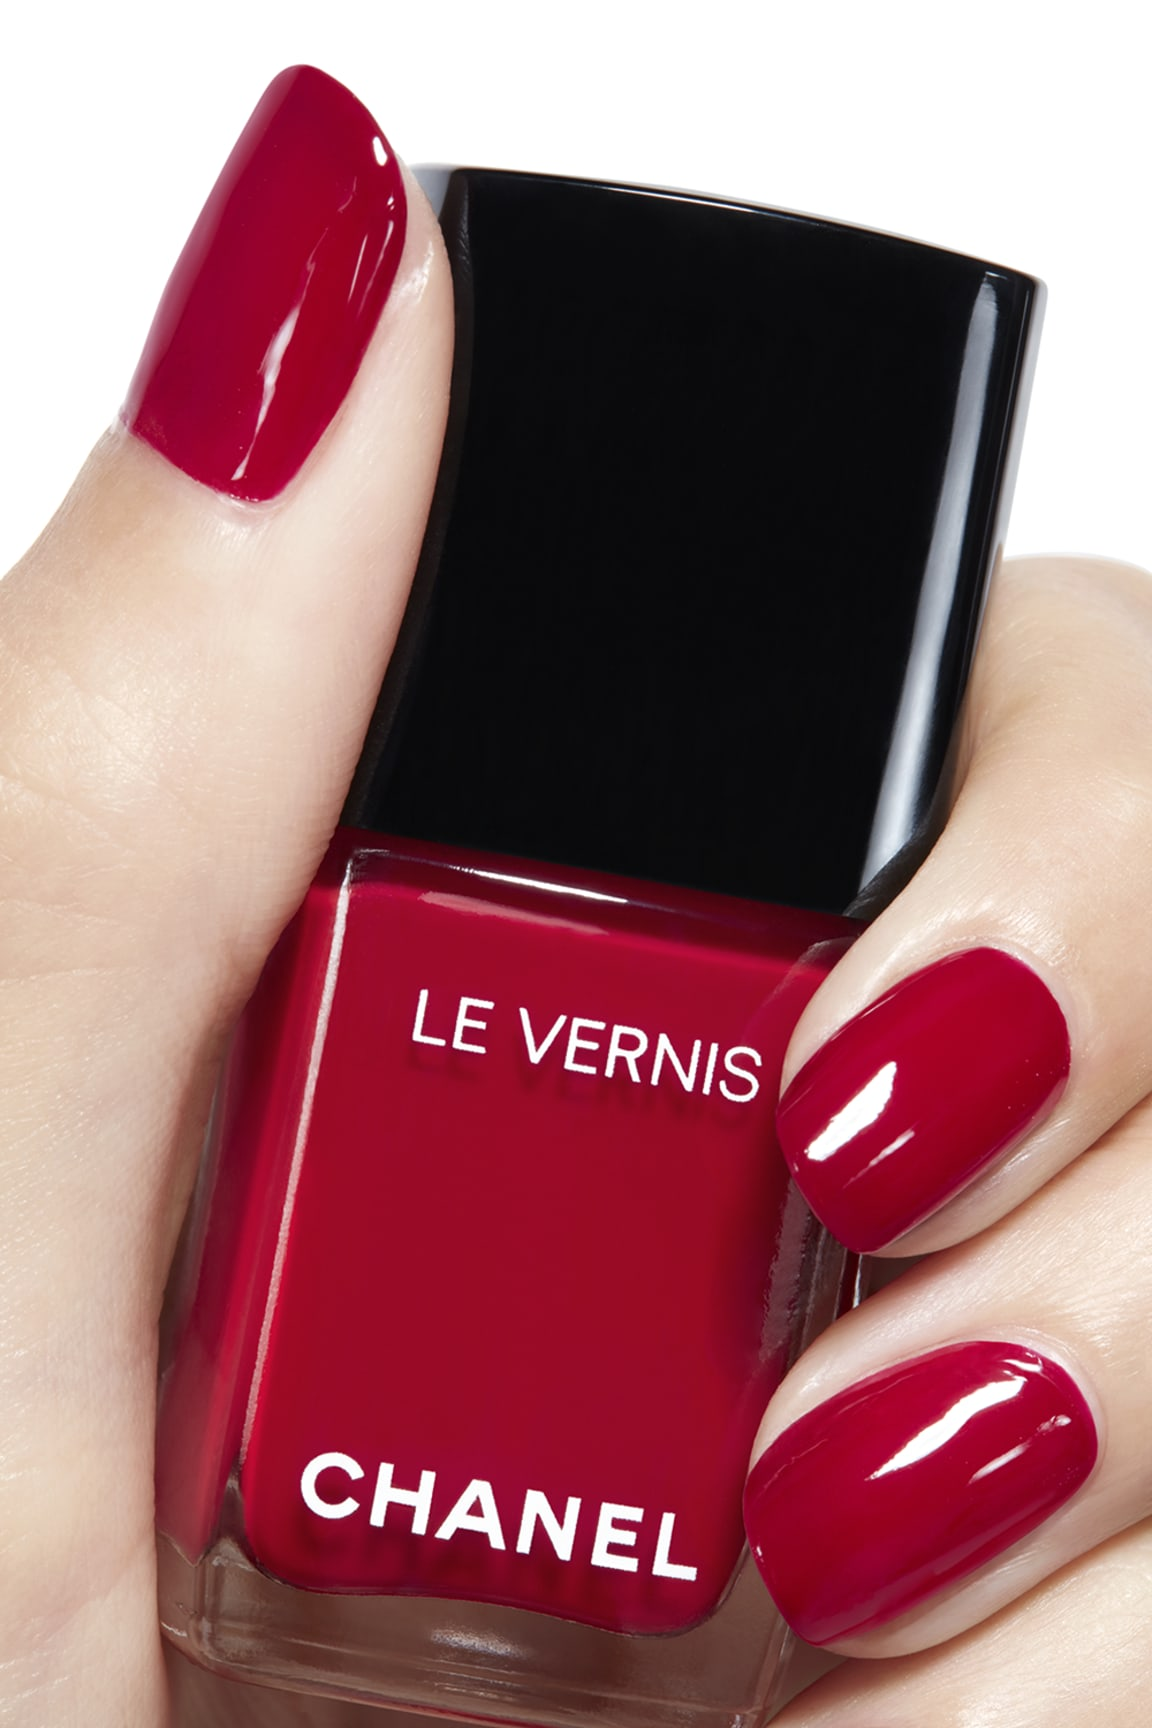 Application makeup visual 2 - LE VERNIS 528 - ROUGE PUISSANT